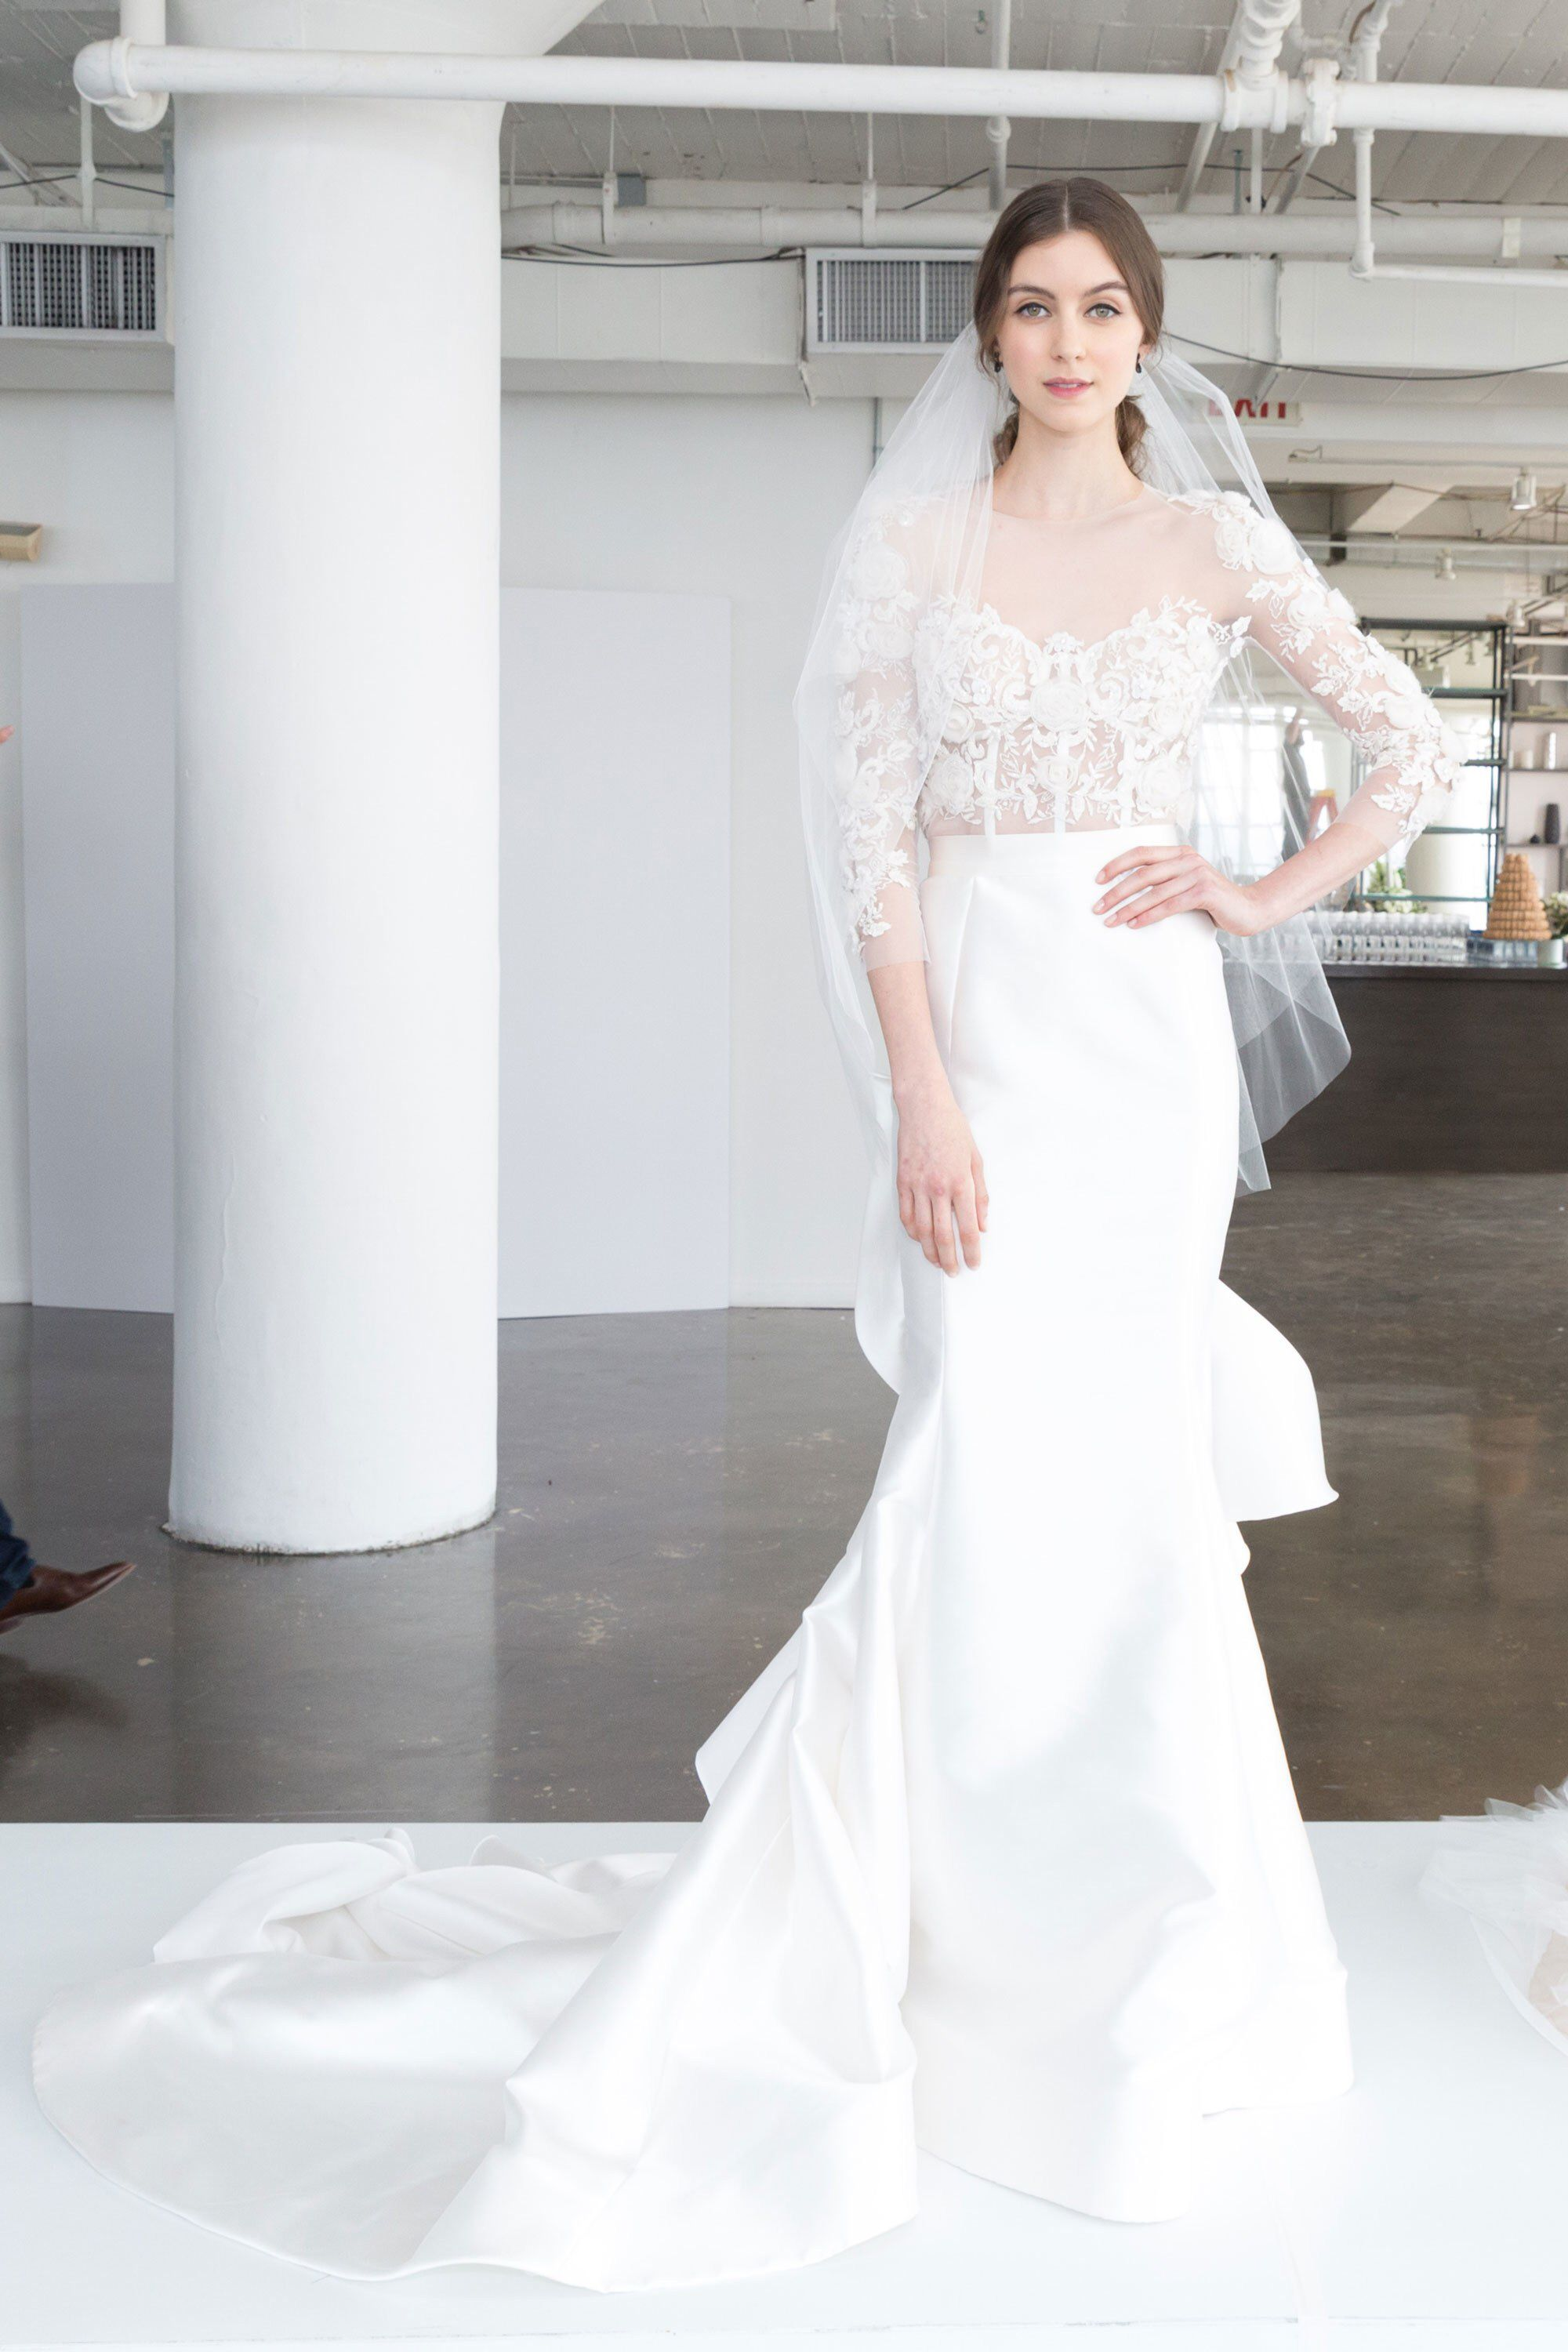 Bridal marchesa spring summer collection video